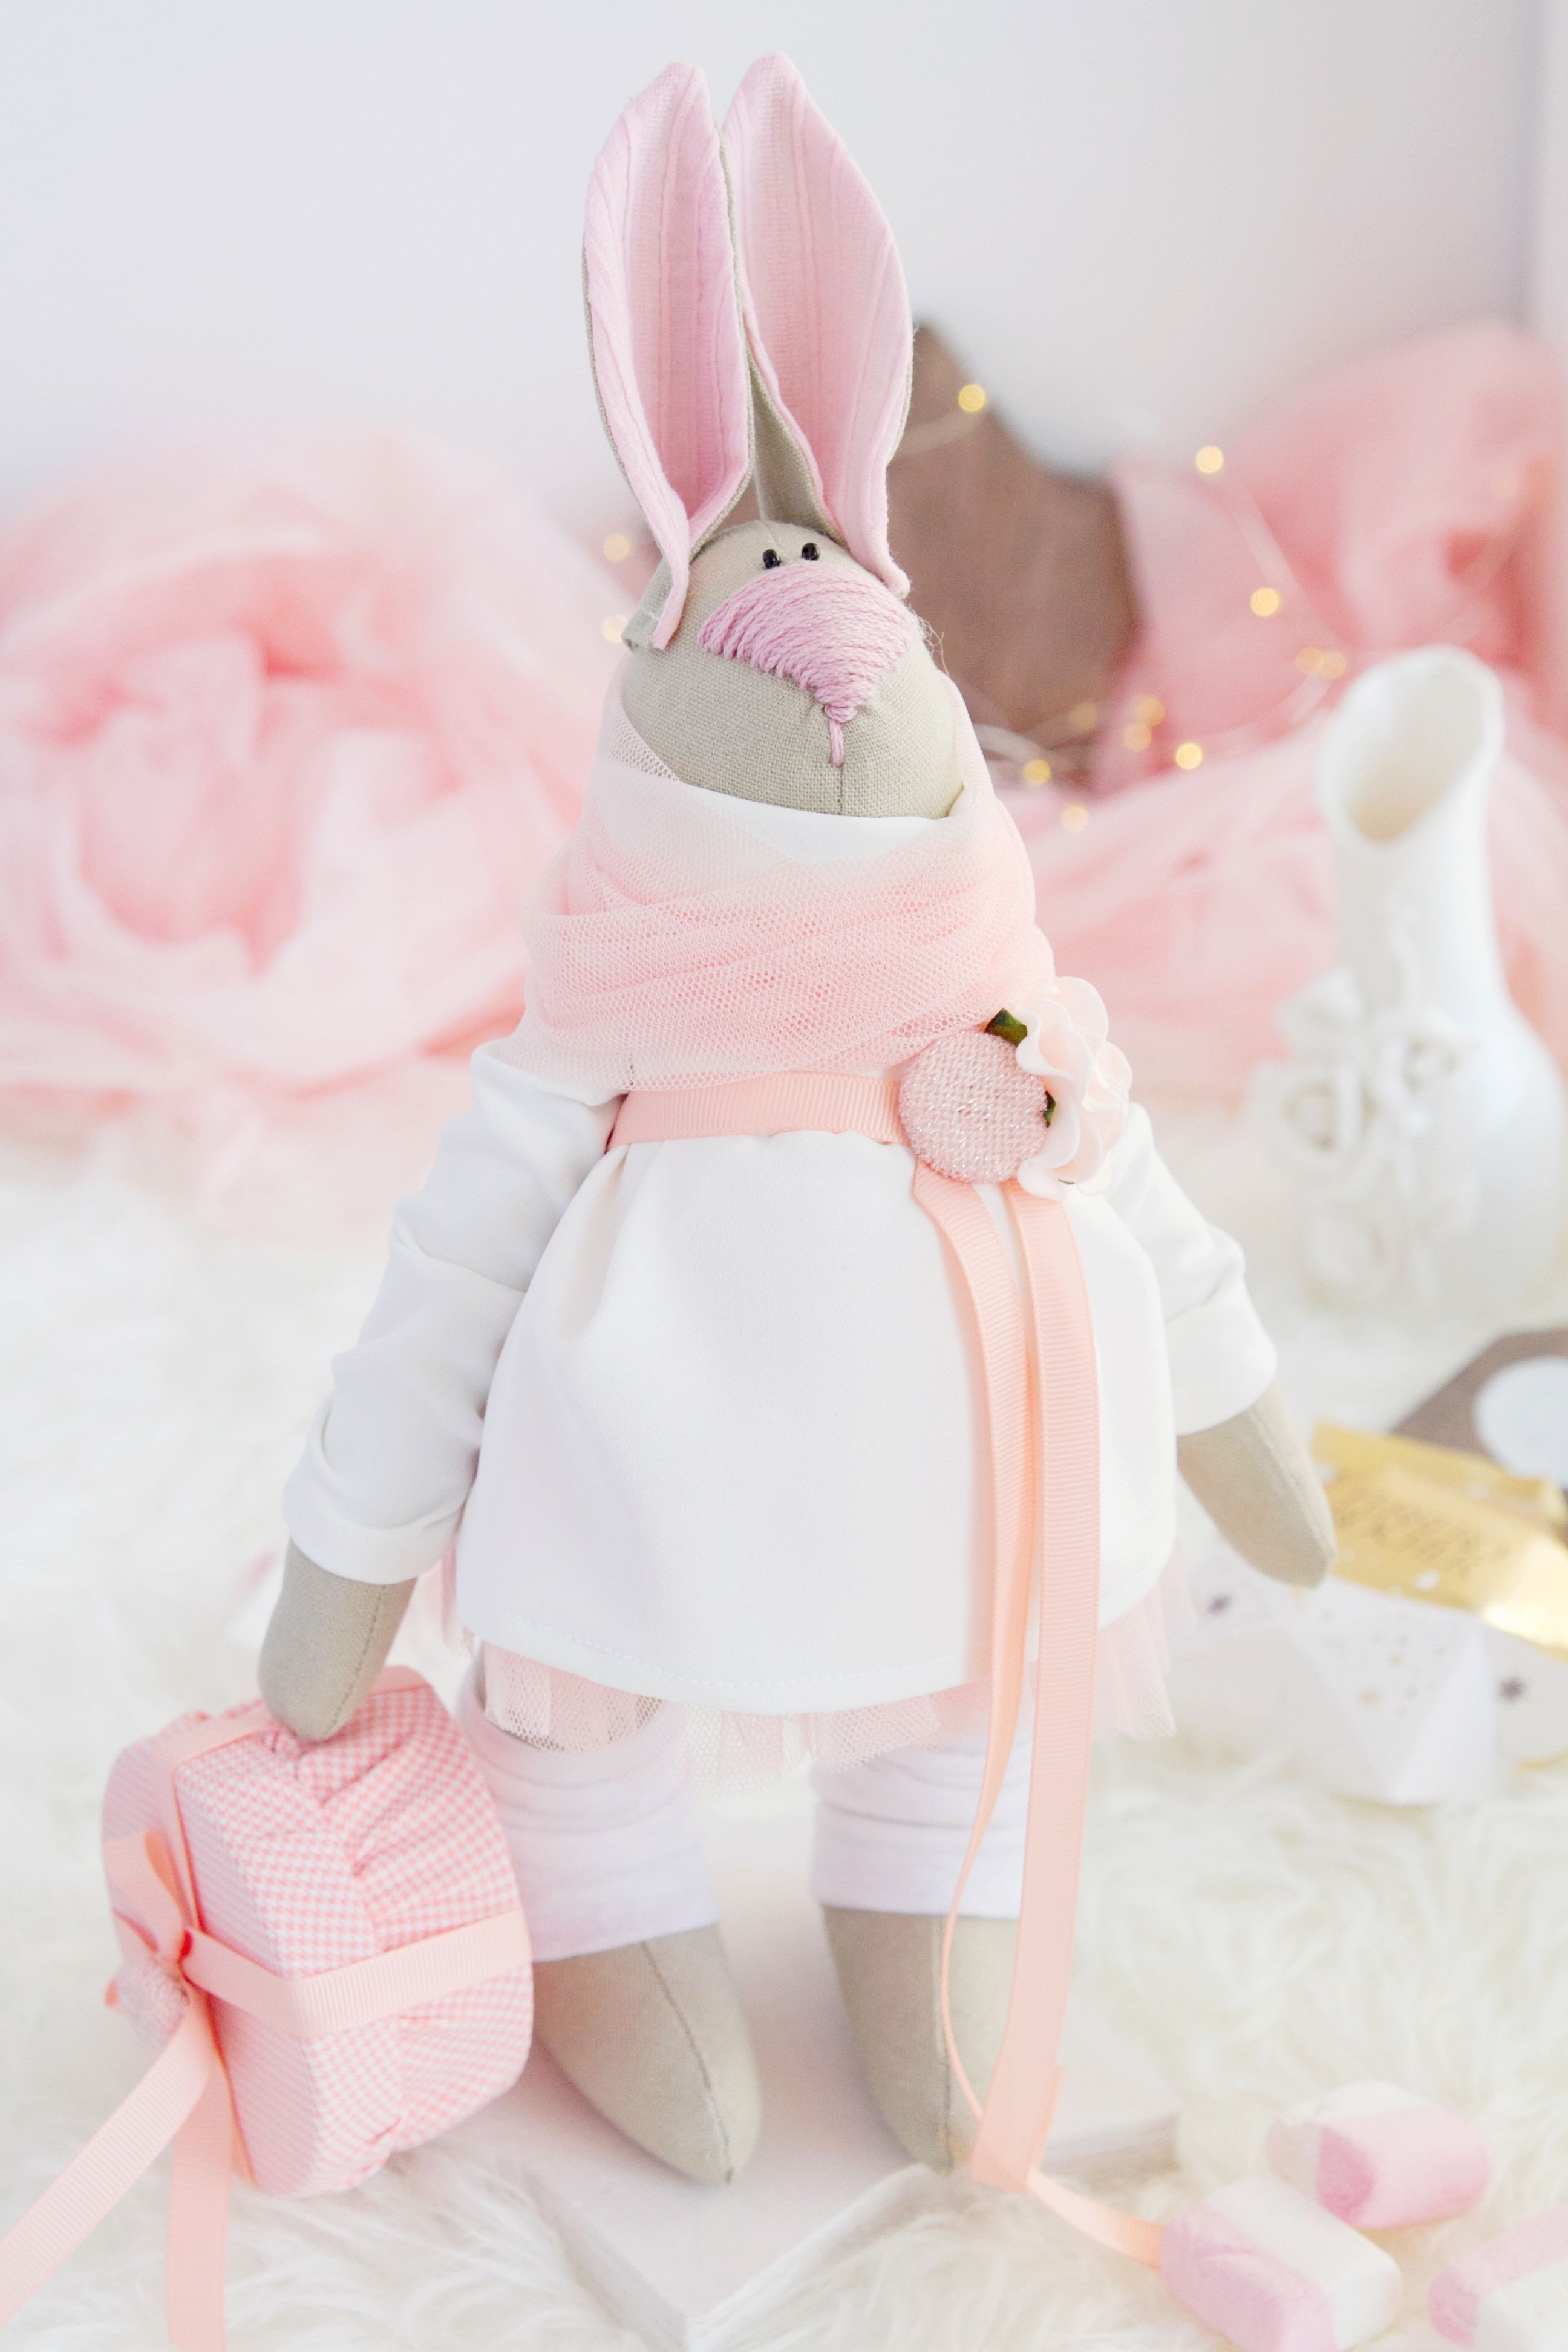 Ester bunny easter home decor easter decoration easter gifts for ester bunny easter home decor easter decoration easter gifts for girls easter gifts for mom pink negle Image collections